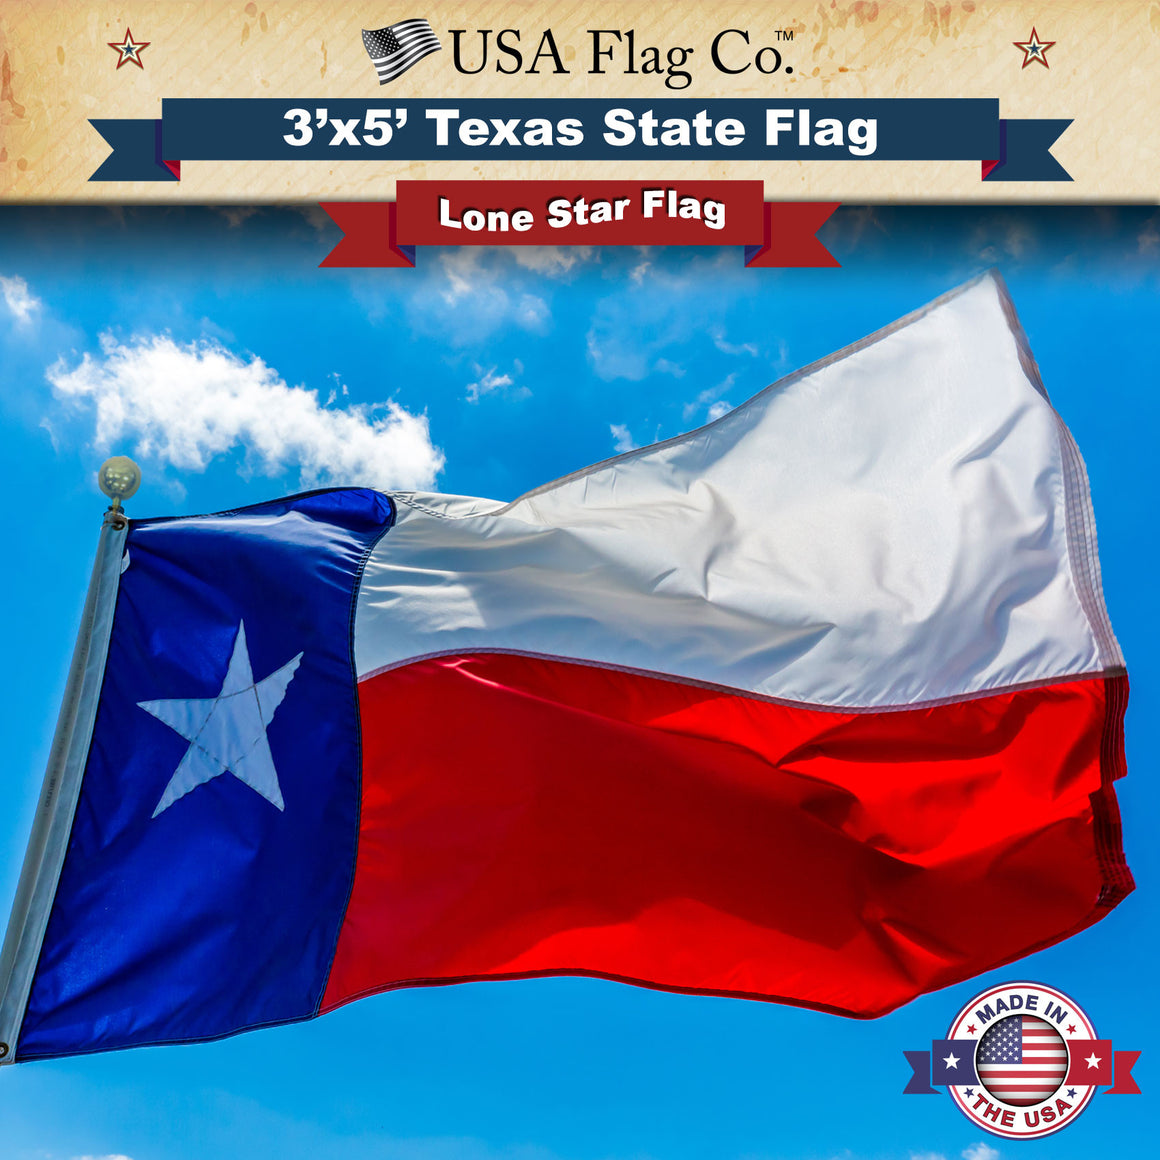 Texas Flag (3x5 foot) Beautiful Fully Sewn Design and 100% Made in the USA by USA Flag Co.